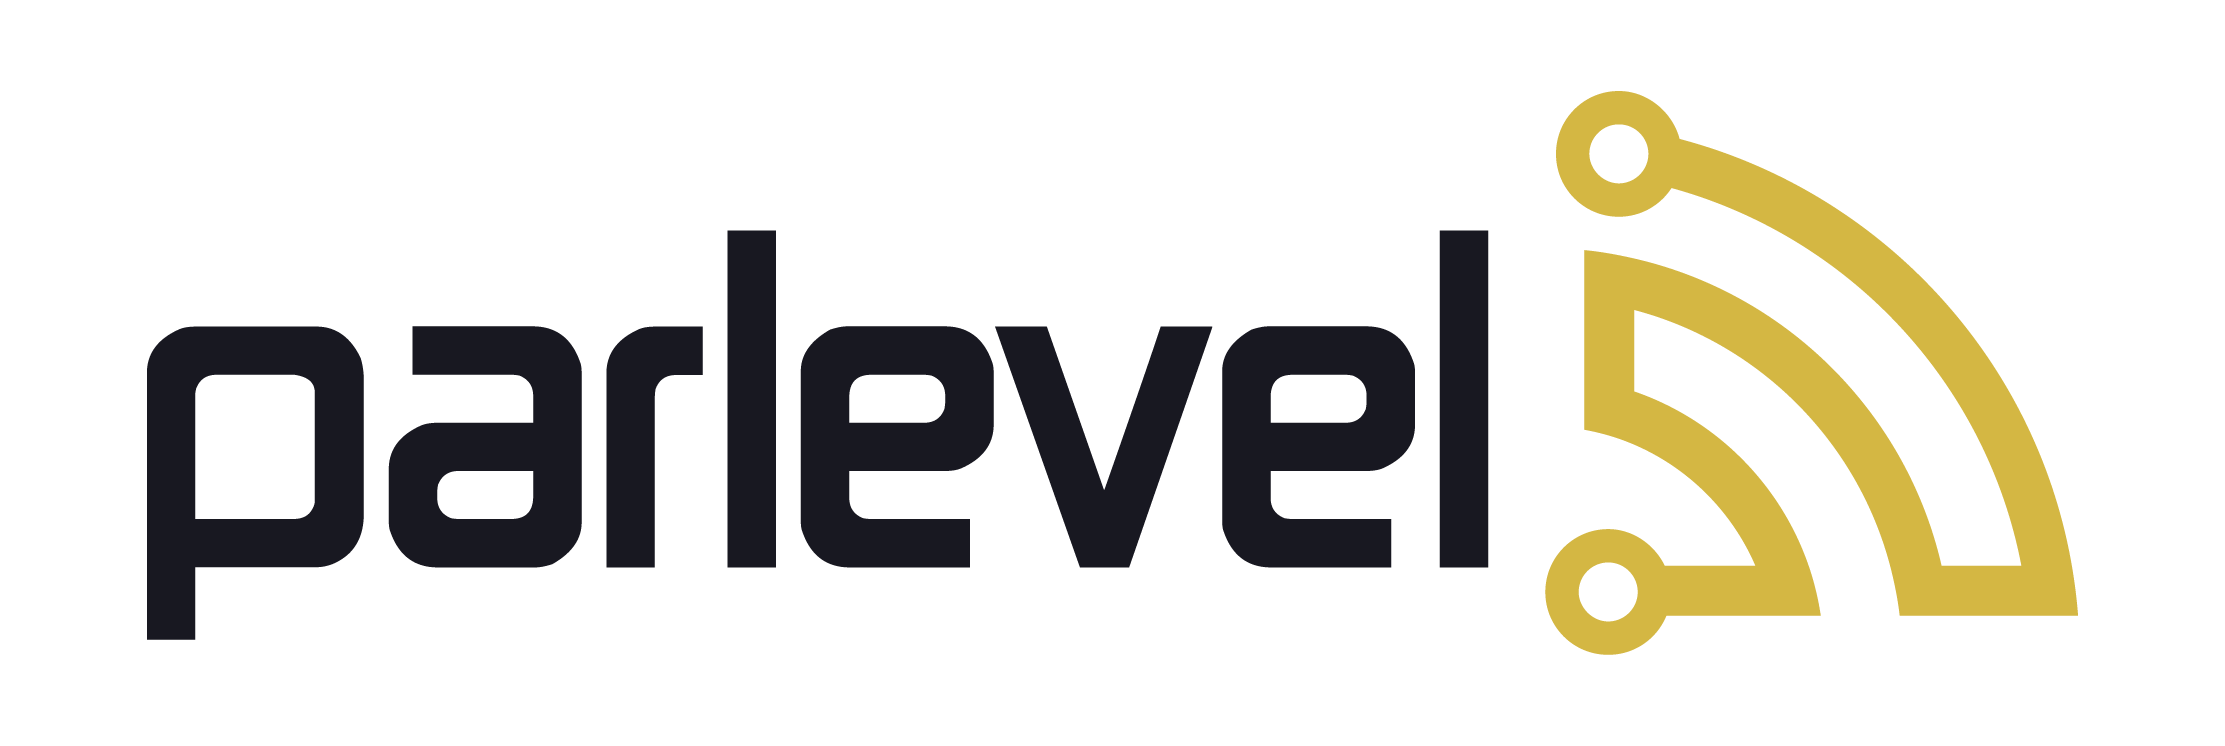 Parlevel Systems, Inc